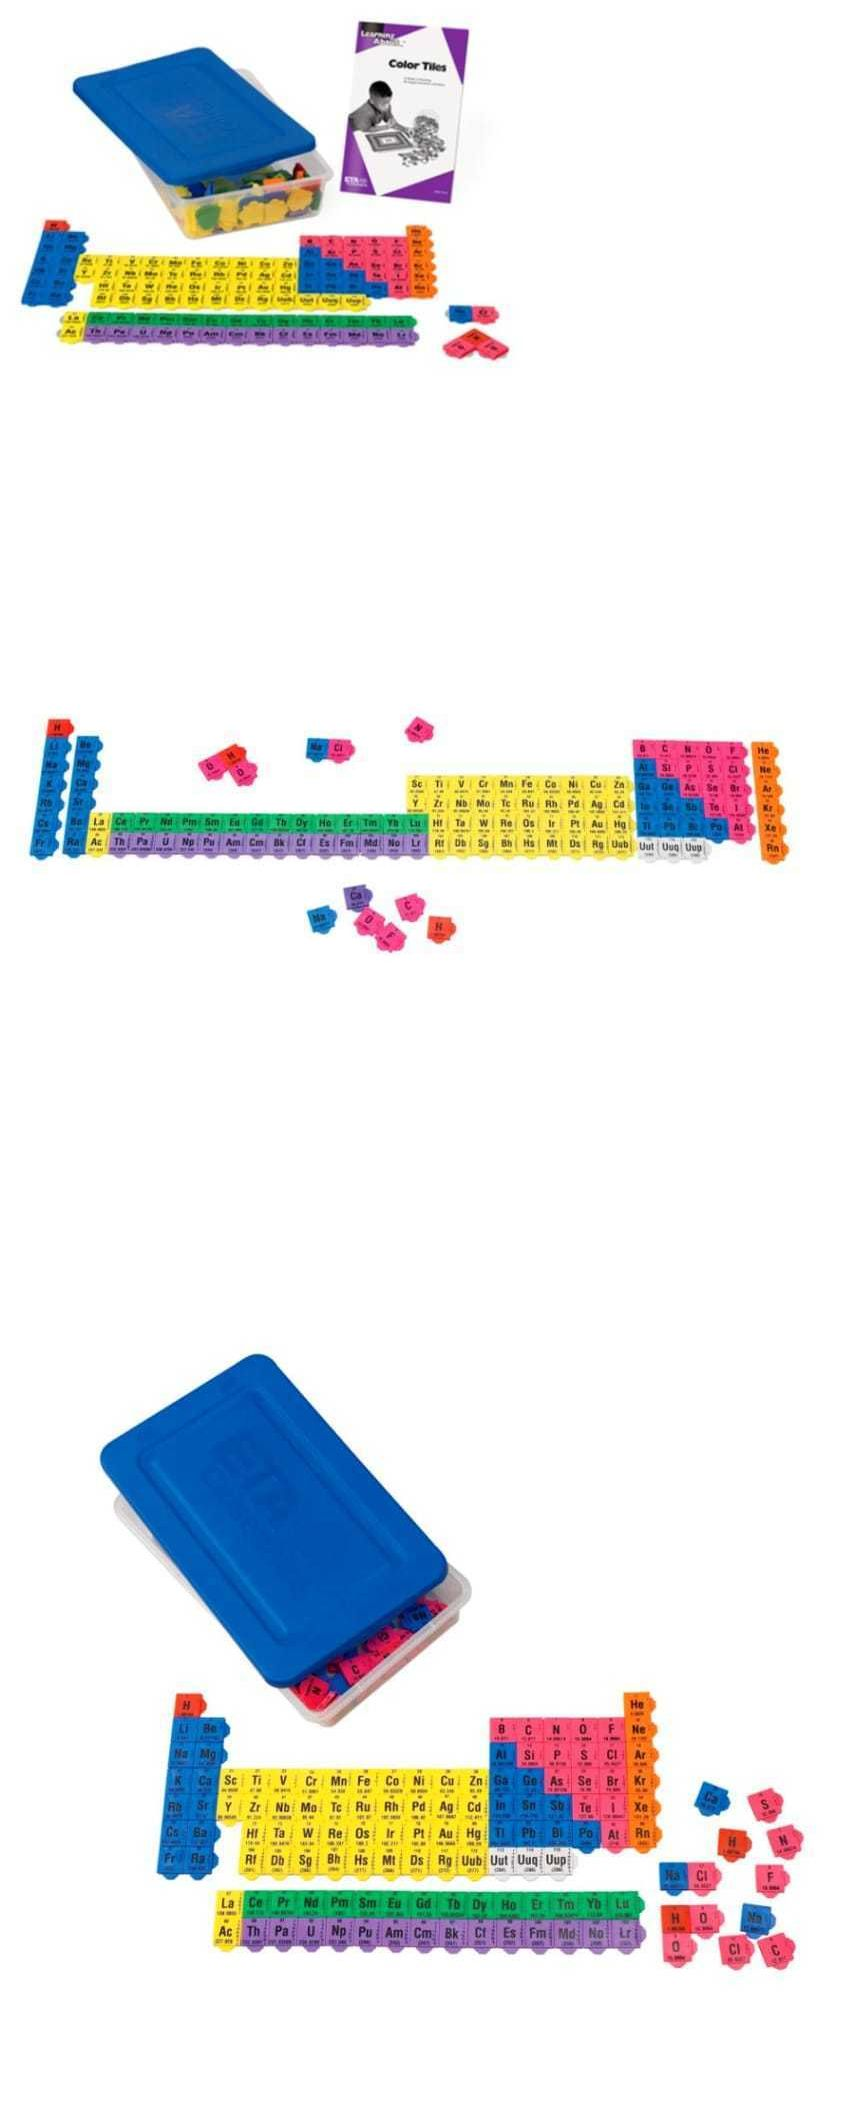 Microscopes and chemistry 2568 periodic table building blocks microscopes and chemistry 2568 periodic table building blocks connecting color tiles science educational toys urtaz Images